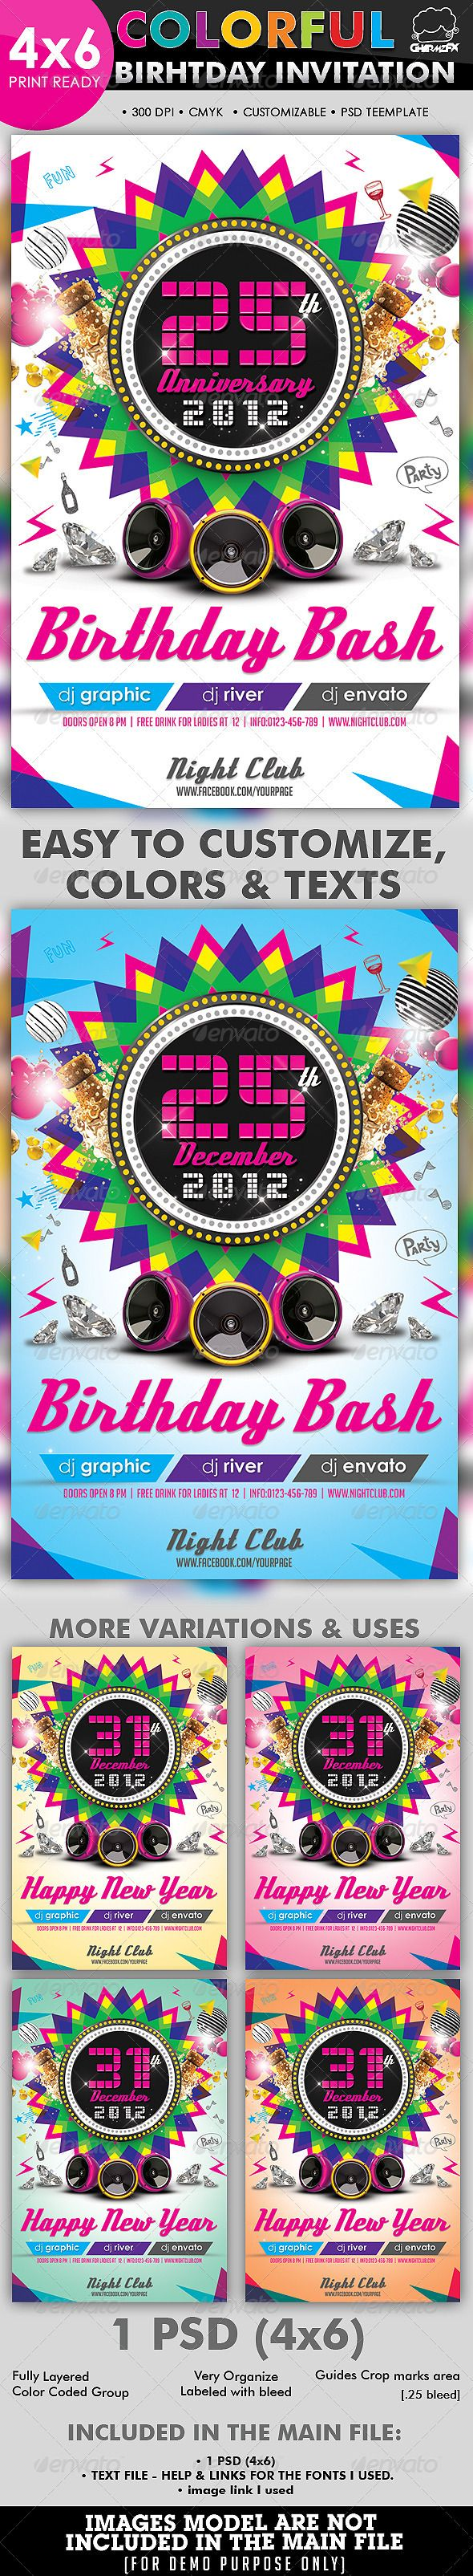 Colorful Birthday Invitation Flyer Template   Colorful birthday ...